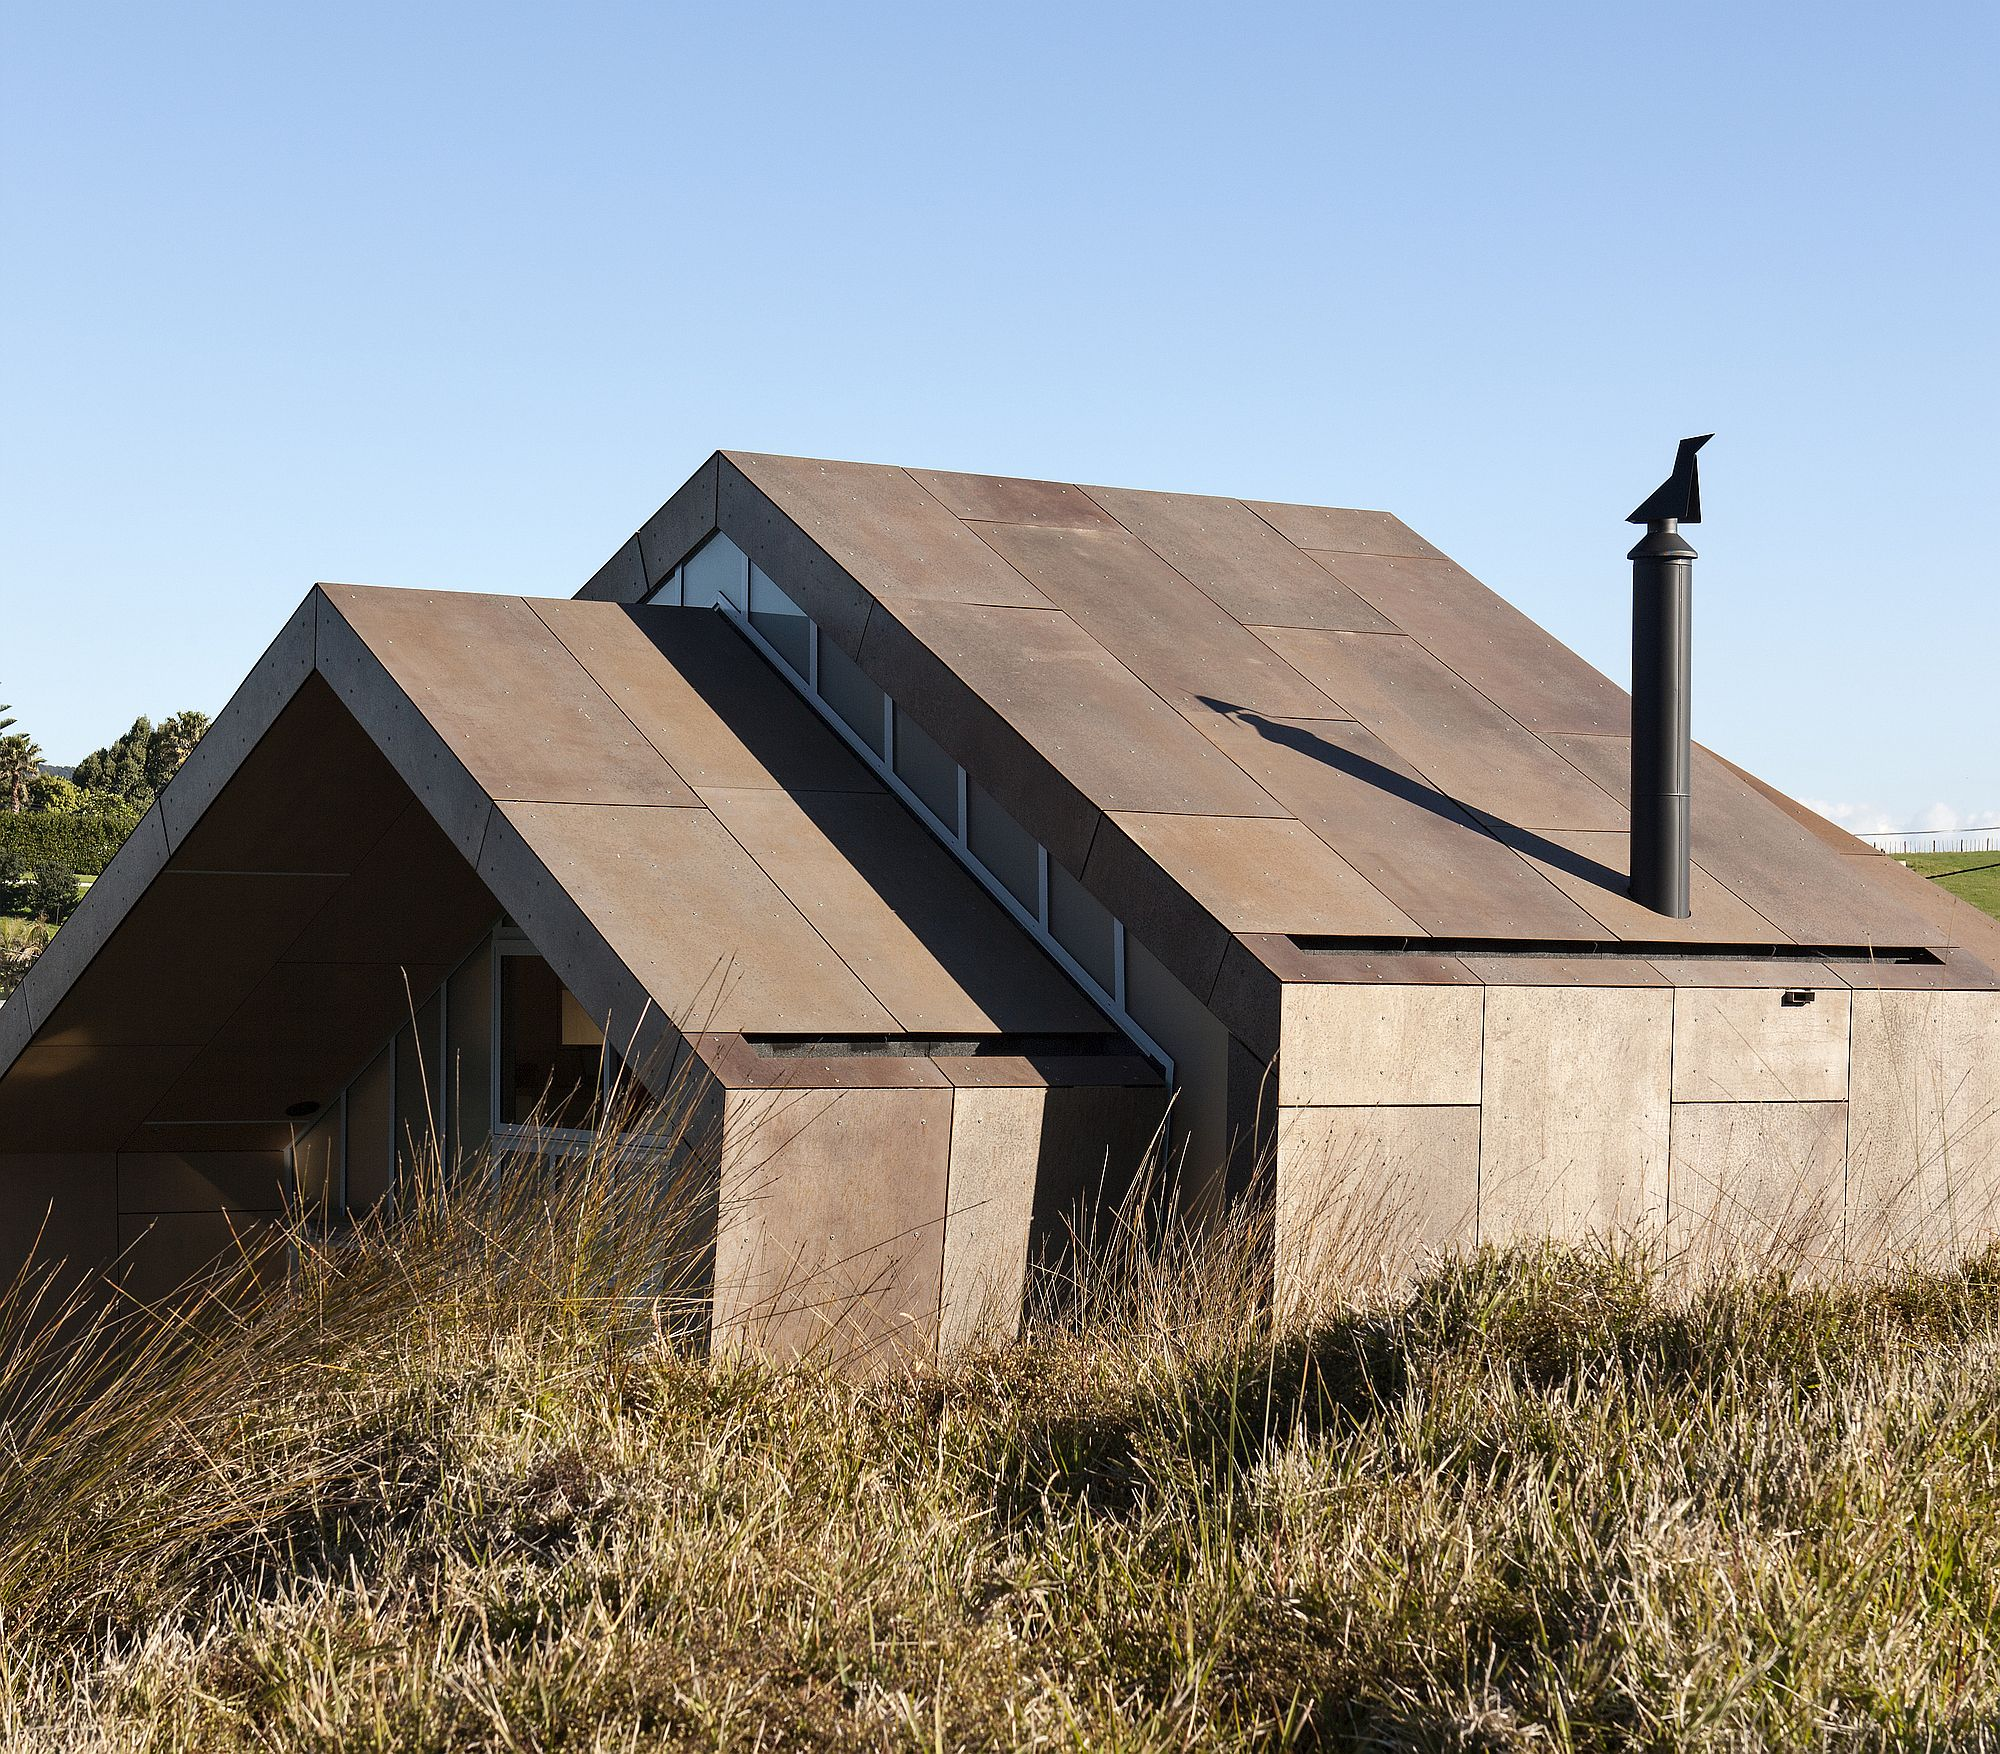 Fabulous weathered panels of the house allow it to blend in with the landscape